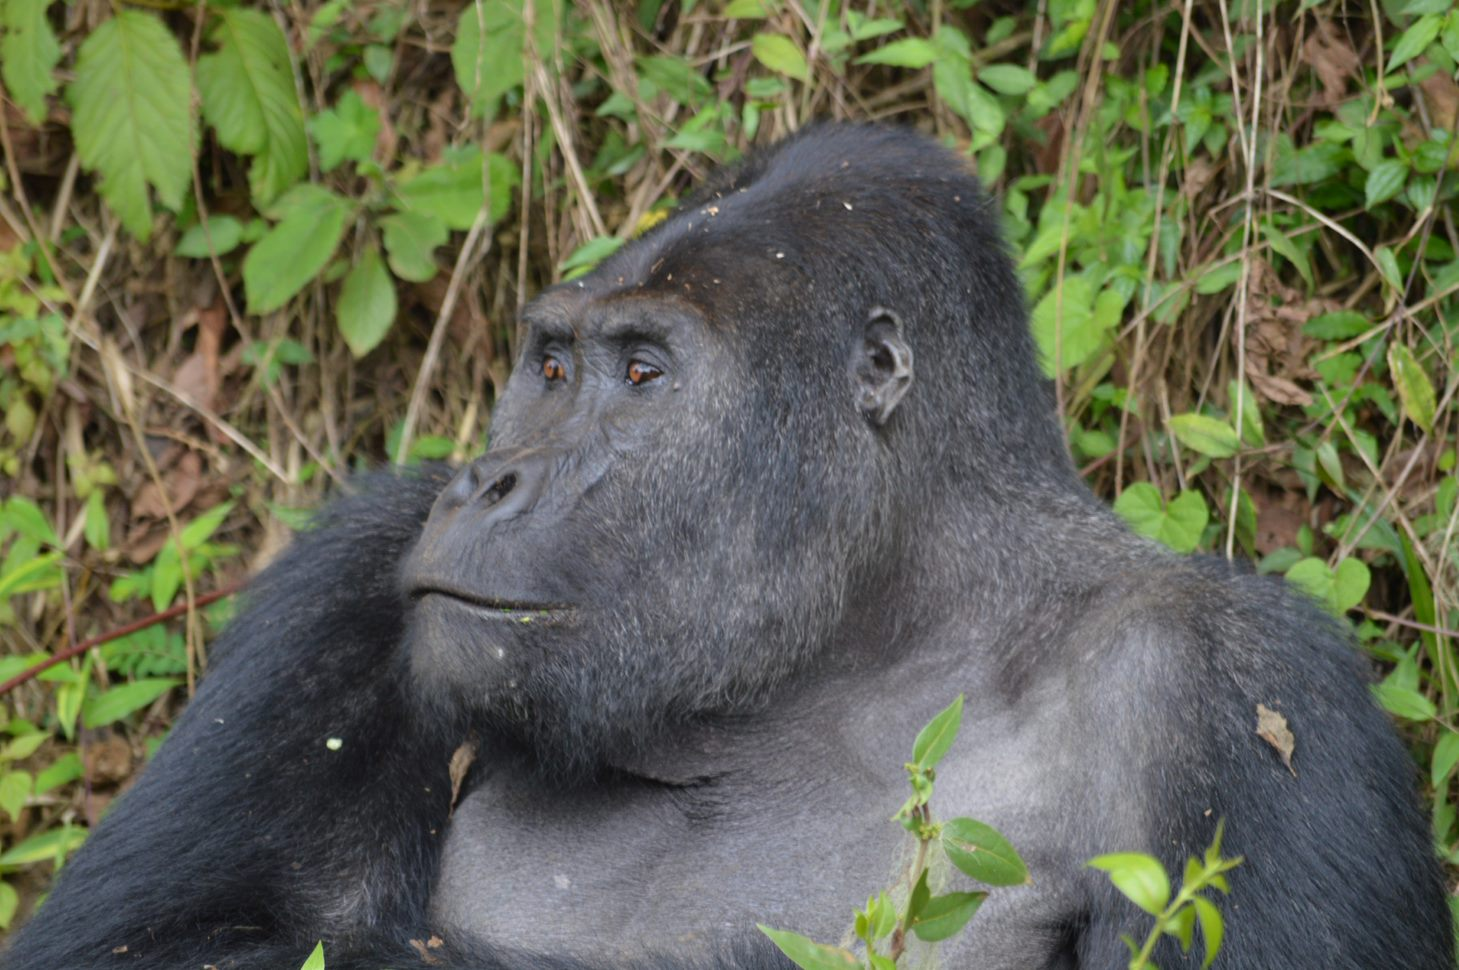 Grauer's gorilla near Maiko National Park. As described in the story in Mongabay by Rachel Fritts.